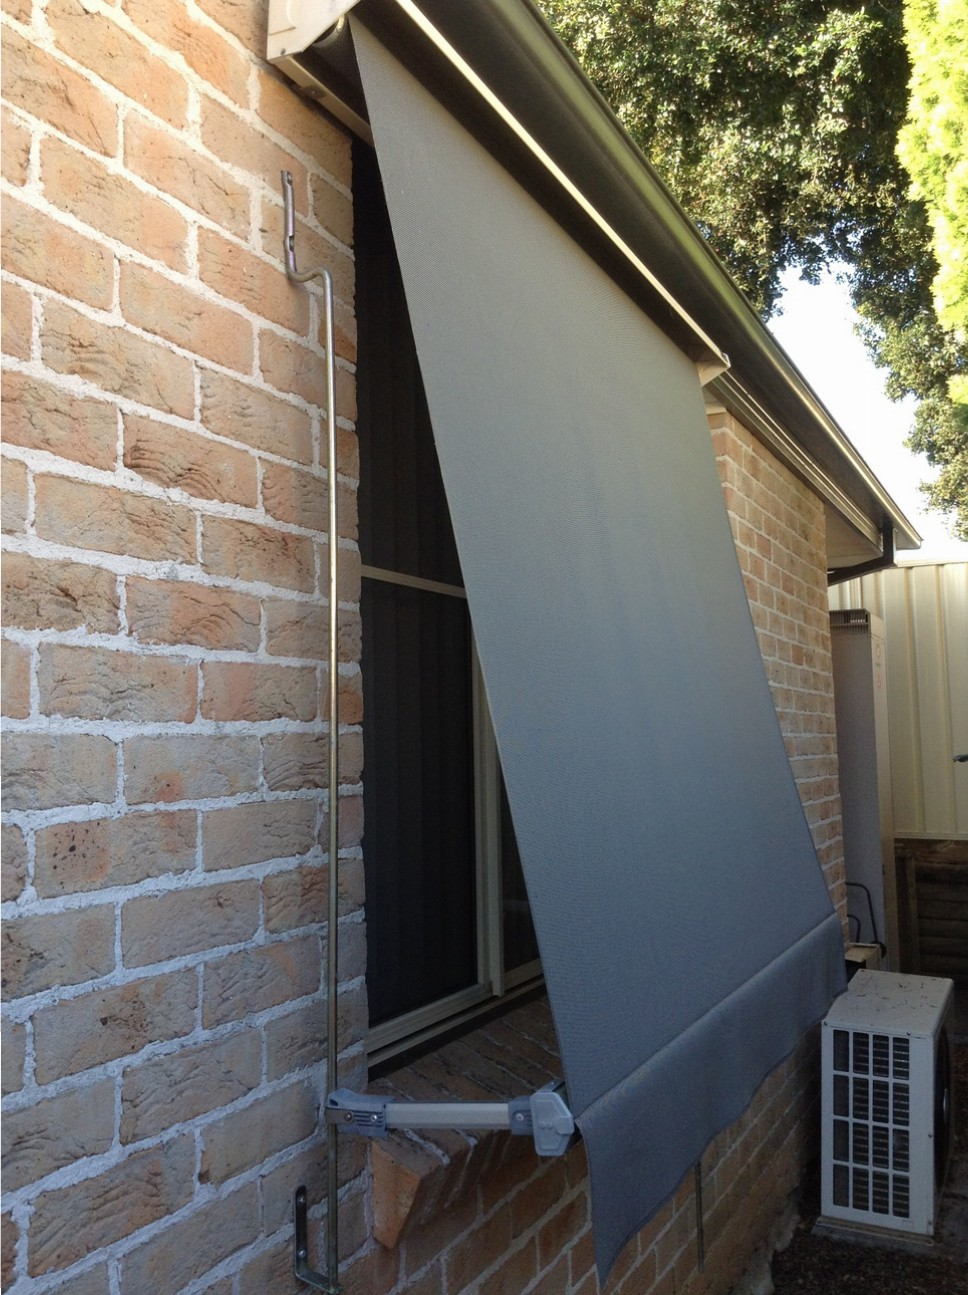 Outdoor Awnings & Coverings